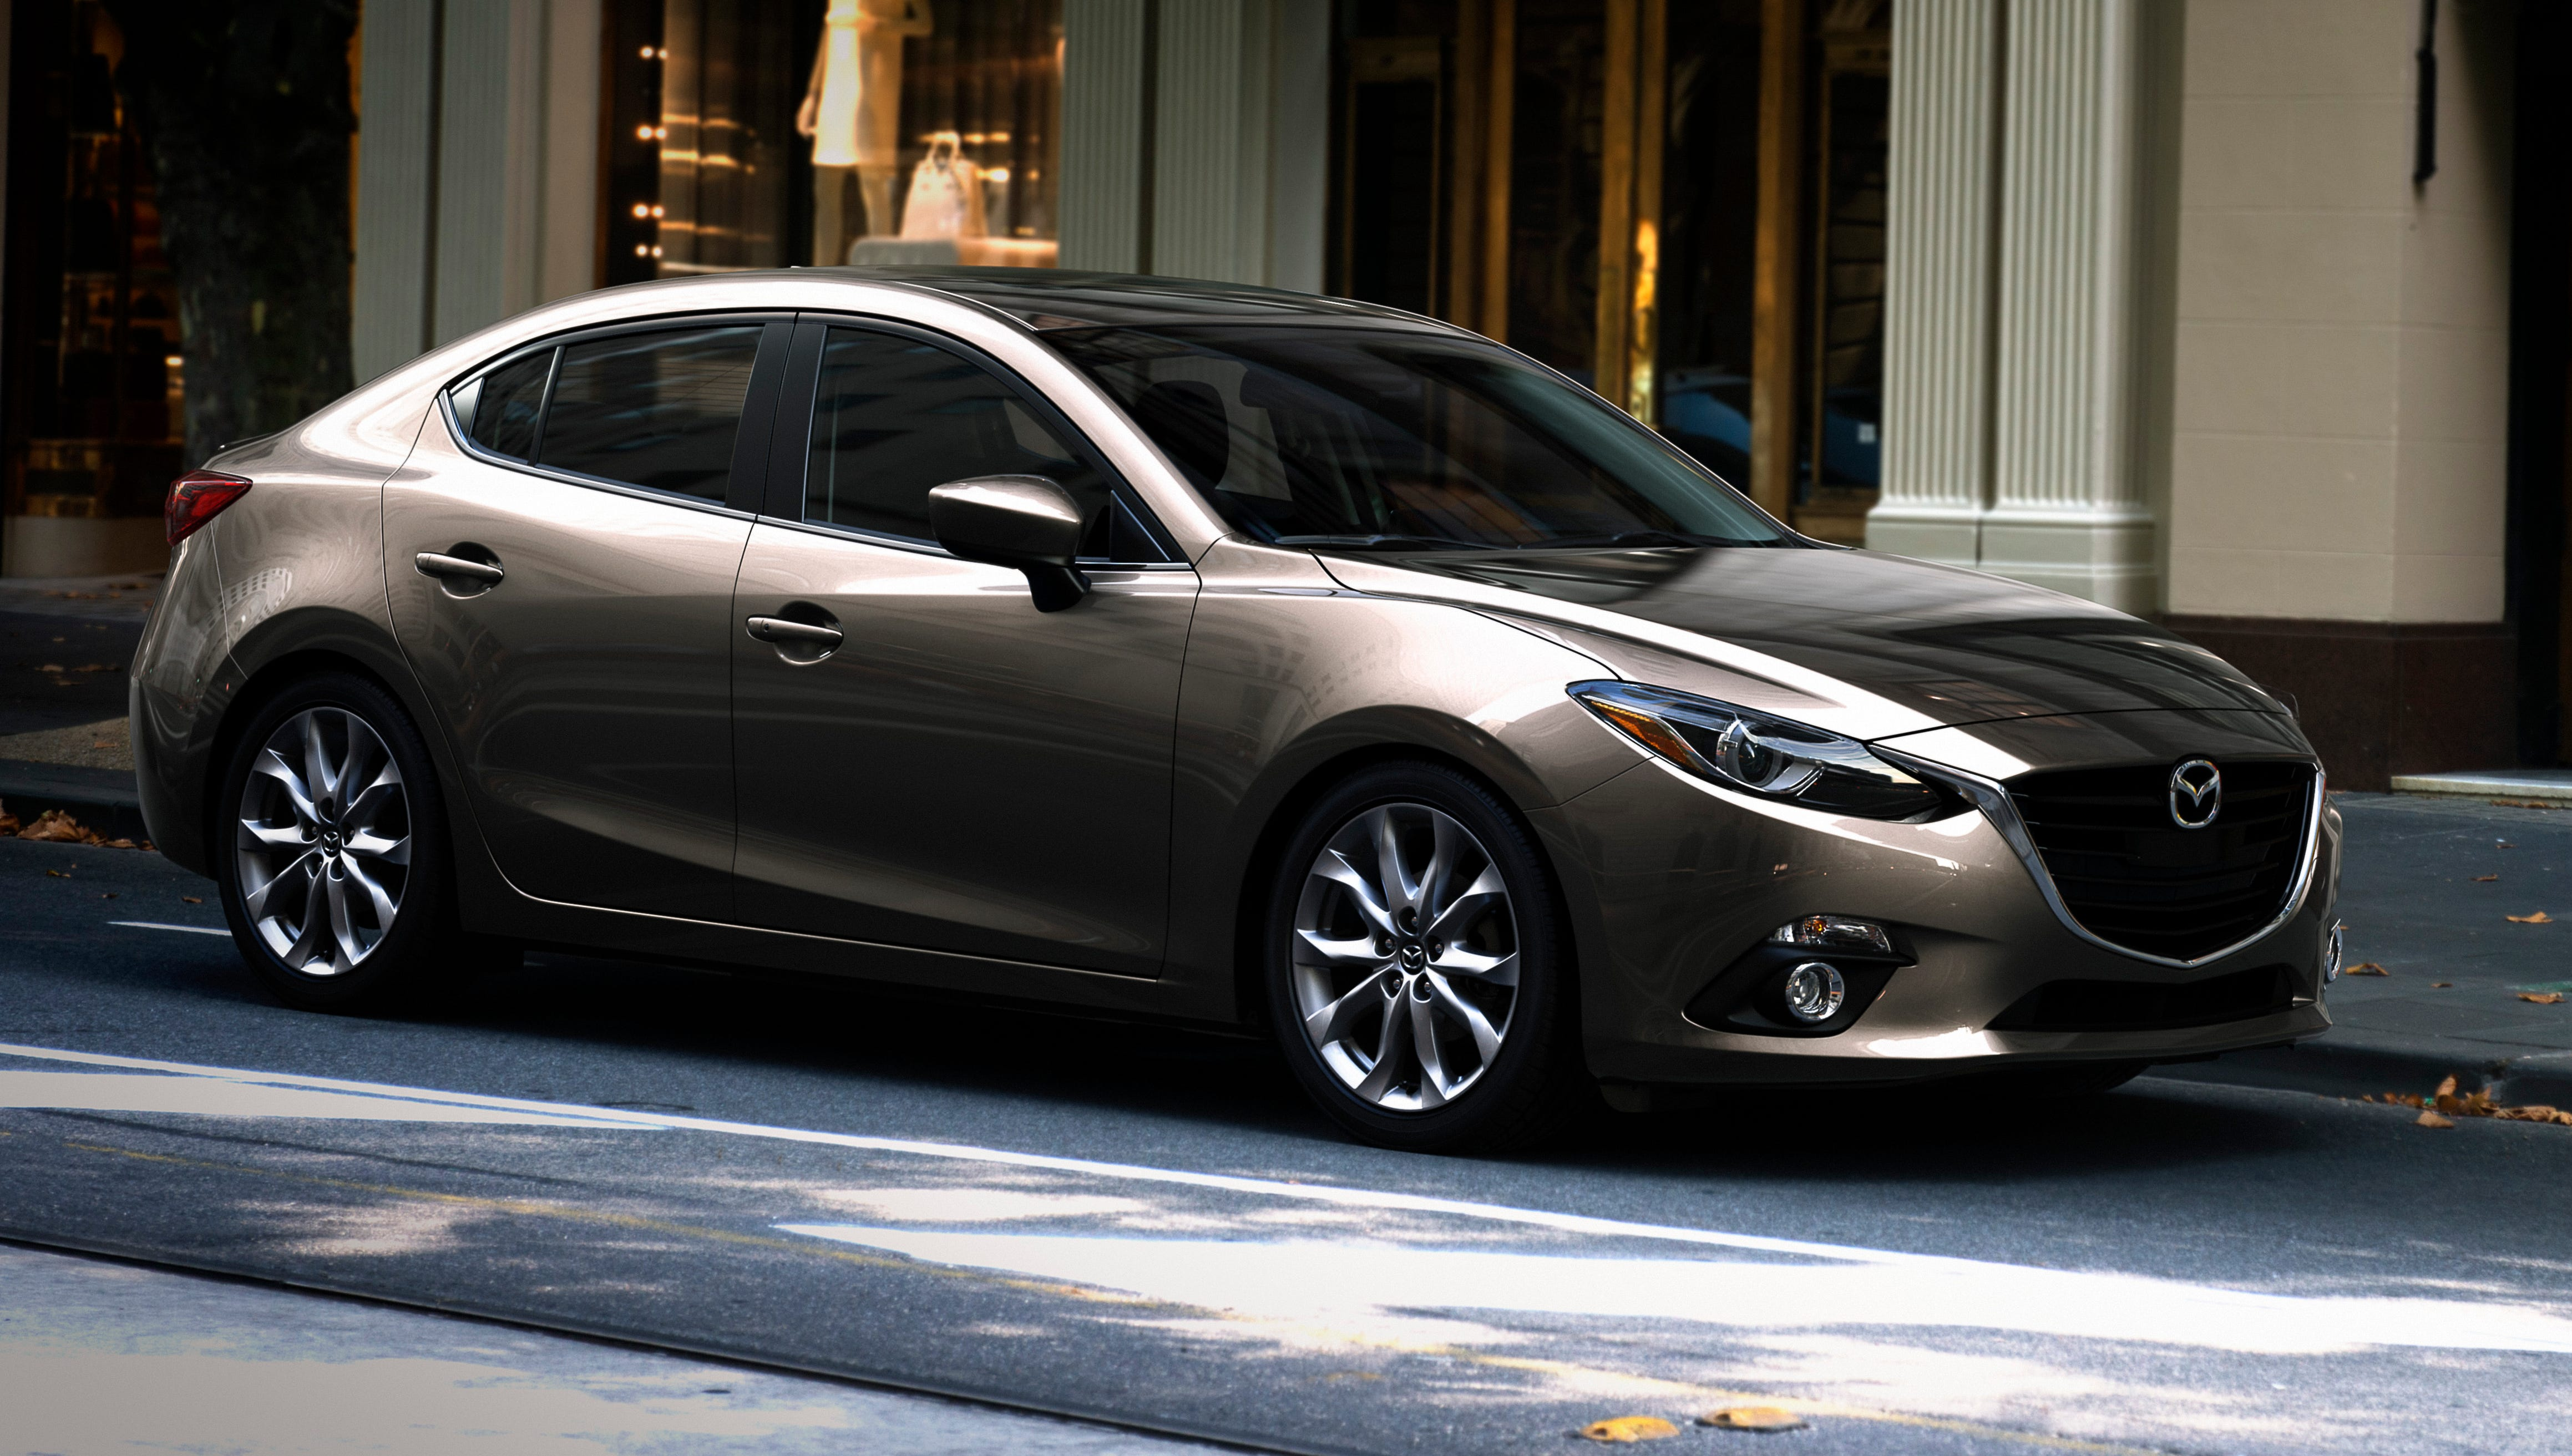 This year's Edmunds.com Top 10 Best Cars for Short Drivers includes the Mazda3 starting at $17,495 (the all-new redesigned 2014 model shown here).